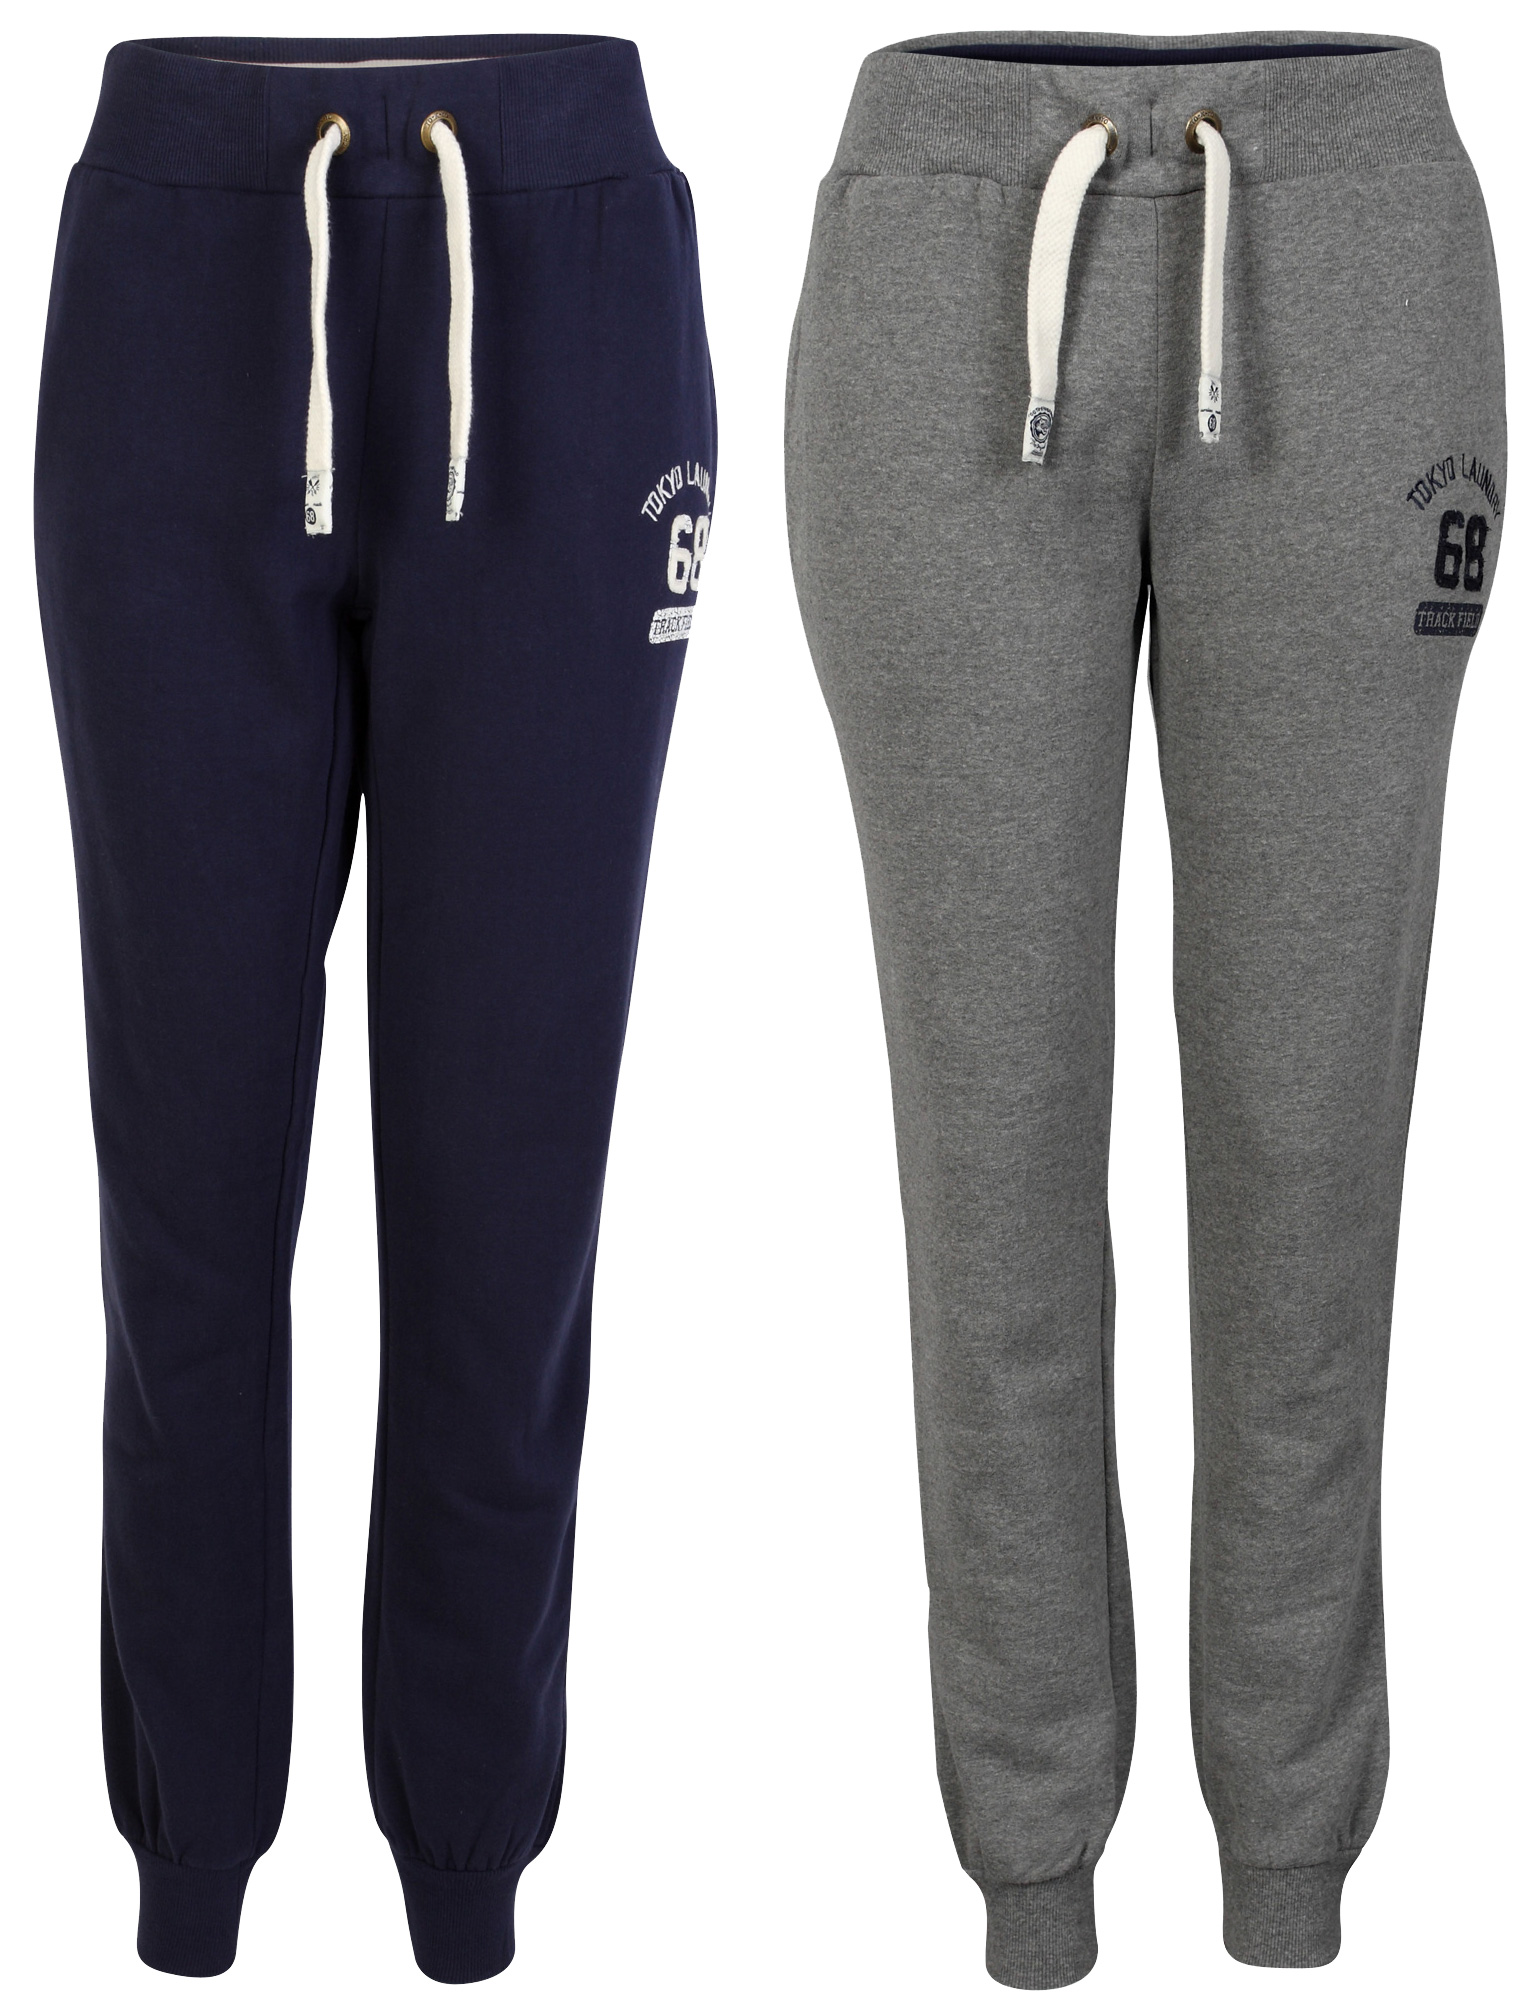 Unique Sporty Sheek Is Once Again Looking To Establish Their Brand As A Big Name In Womens Fashion They Are Soon To Launch Their Latest And Best Collection Featuring Only The Most Fashionable Fitness Outfits Of Gym Tops And Exercise Pantsall